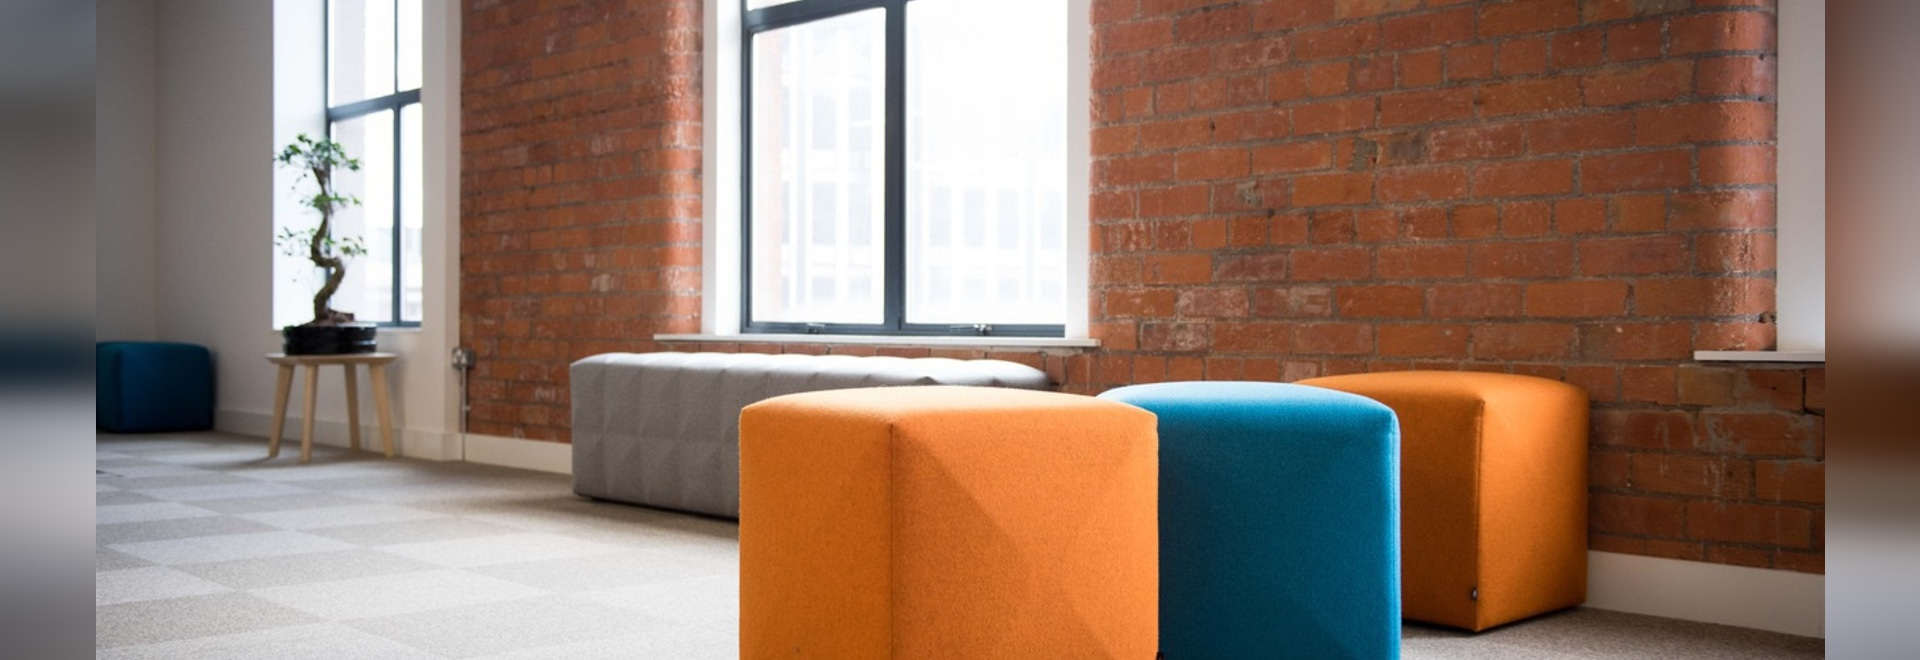 Reducing Noise in an Open Office